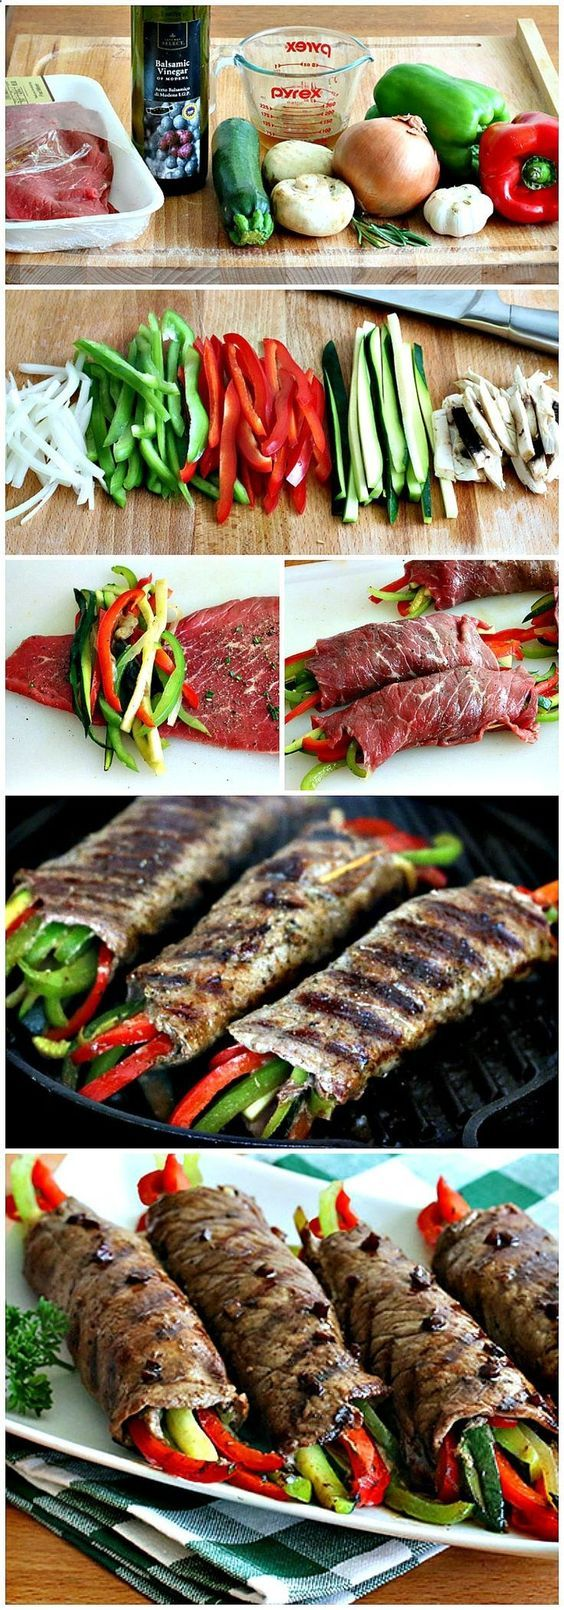 Balsamic Glazed Steak Rolls  #HealthyEating #CleanEating  #ShermanFinancialGroup